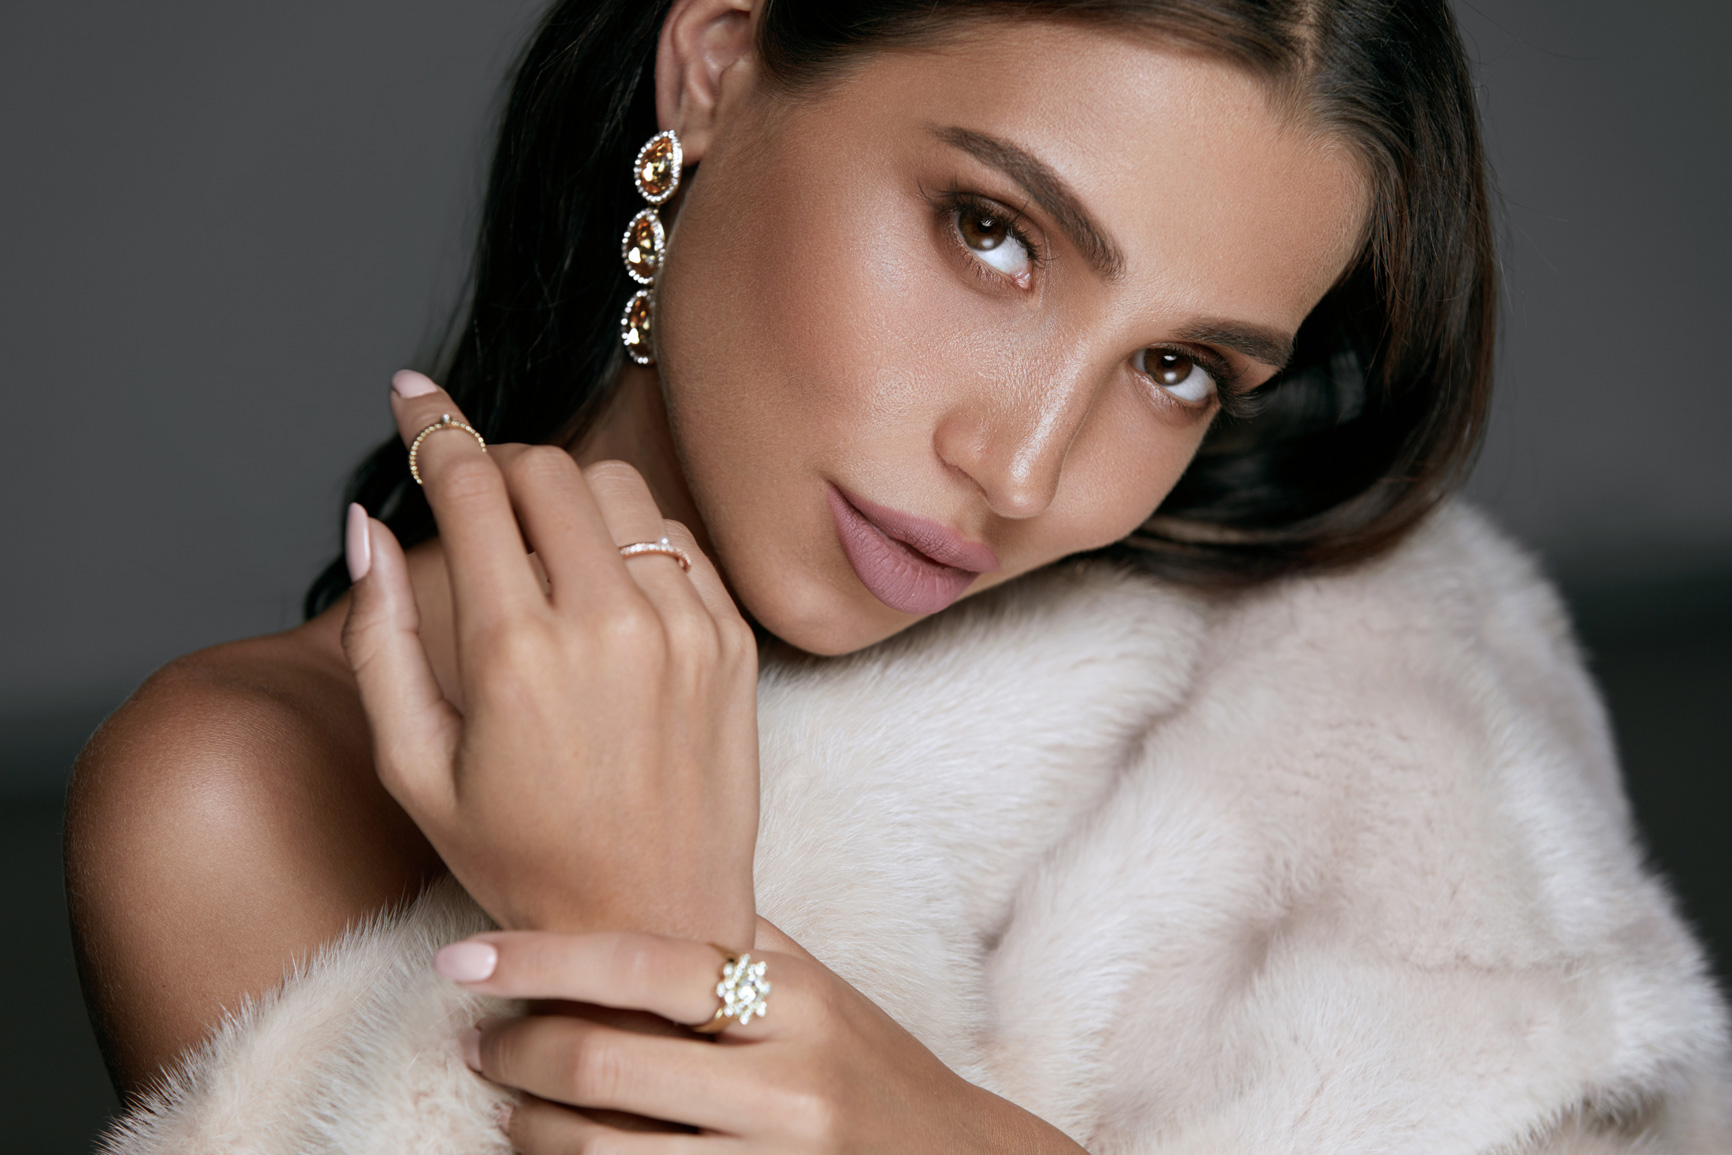 A stylish young woman wearing make up and posing for a photoshoot wearing expensive jewellery